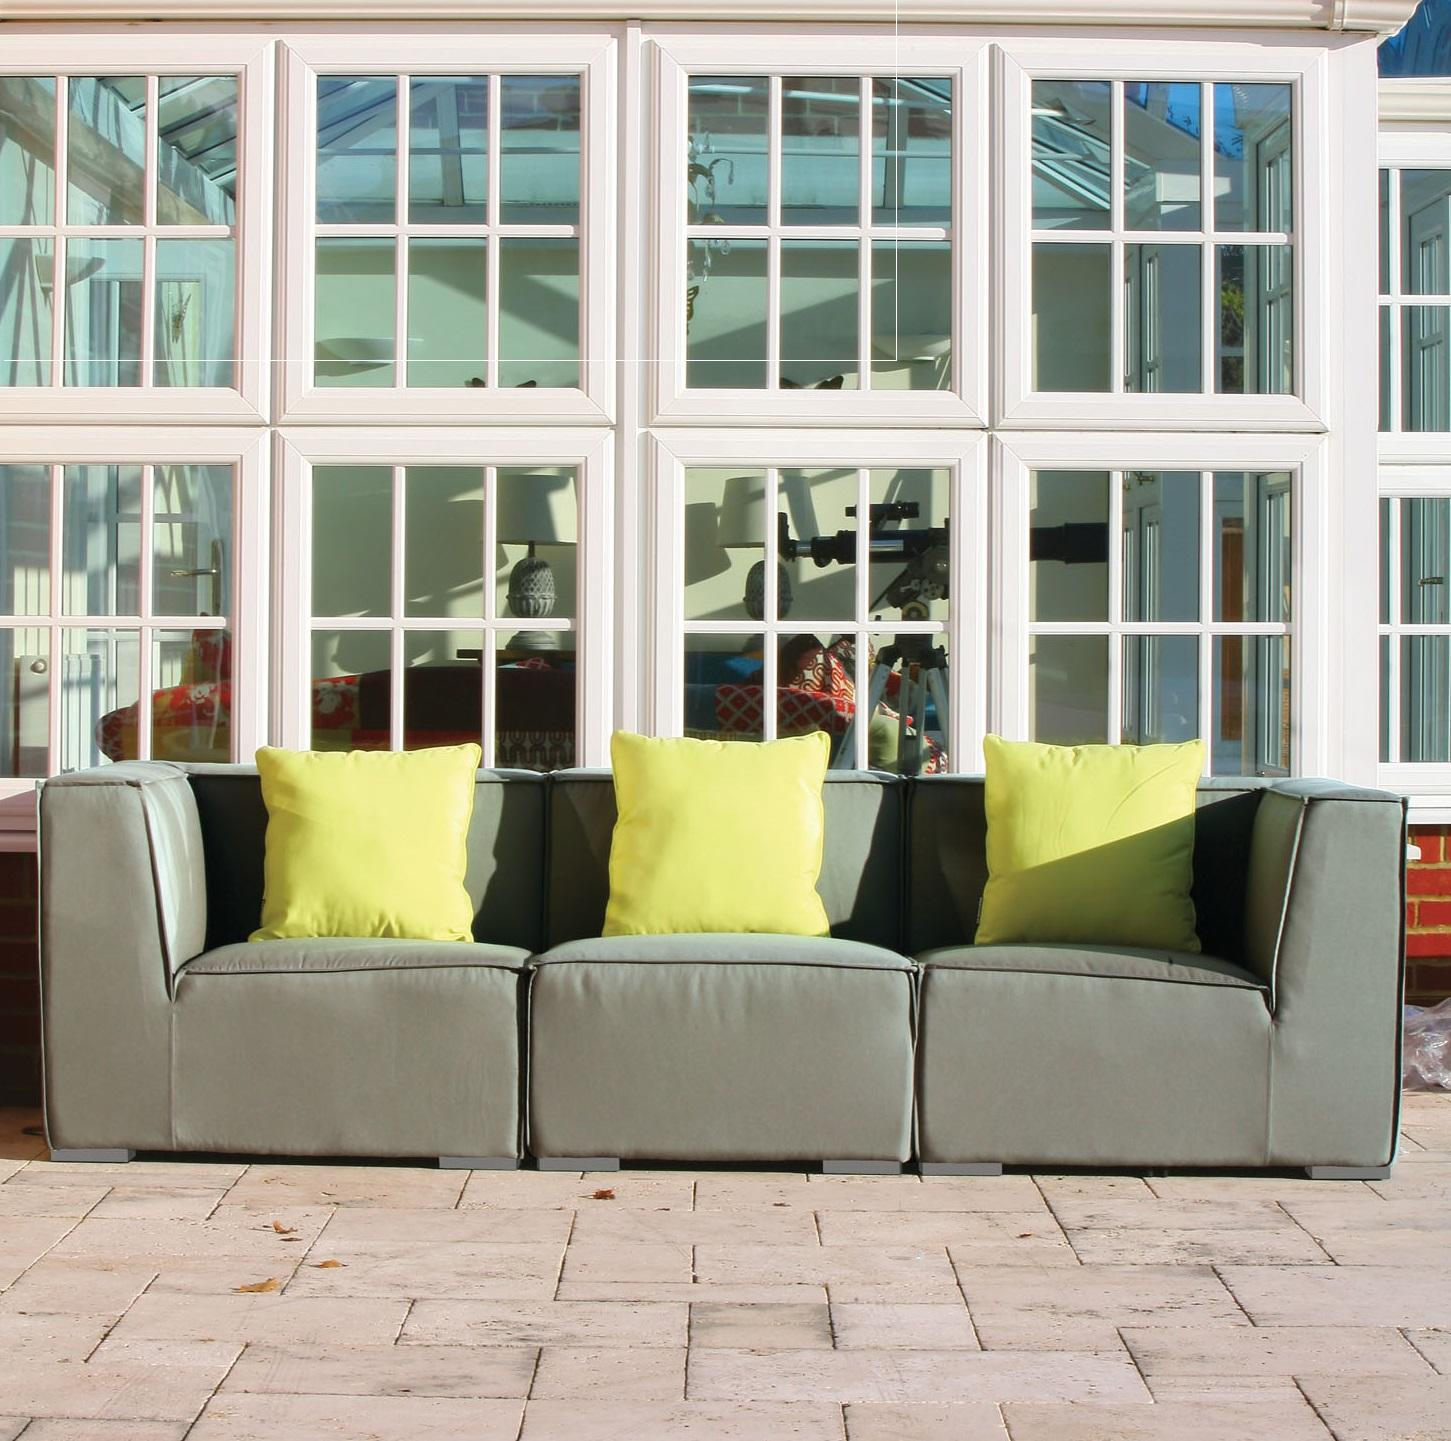 garden sofa modular in taupe weatherproof fabric 3 pieces